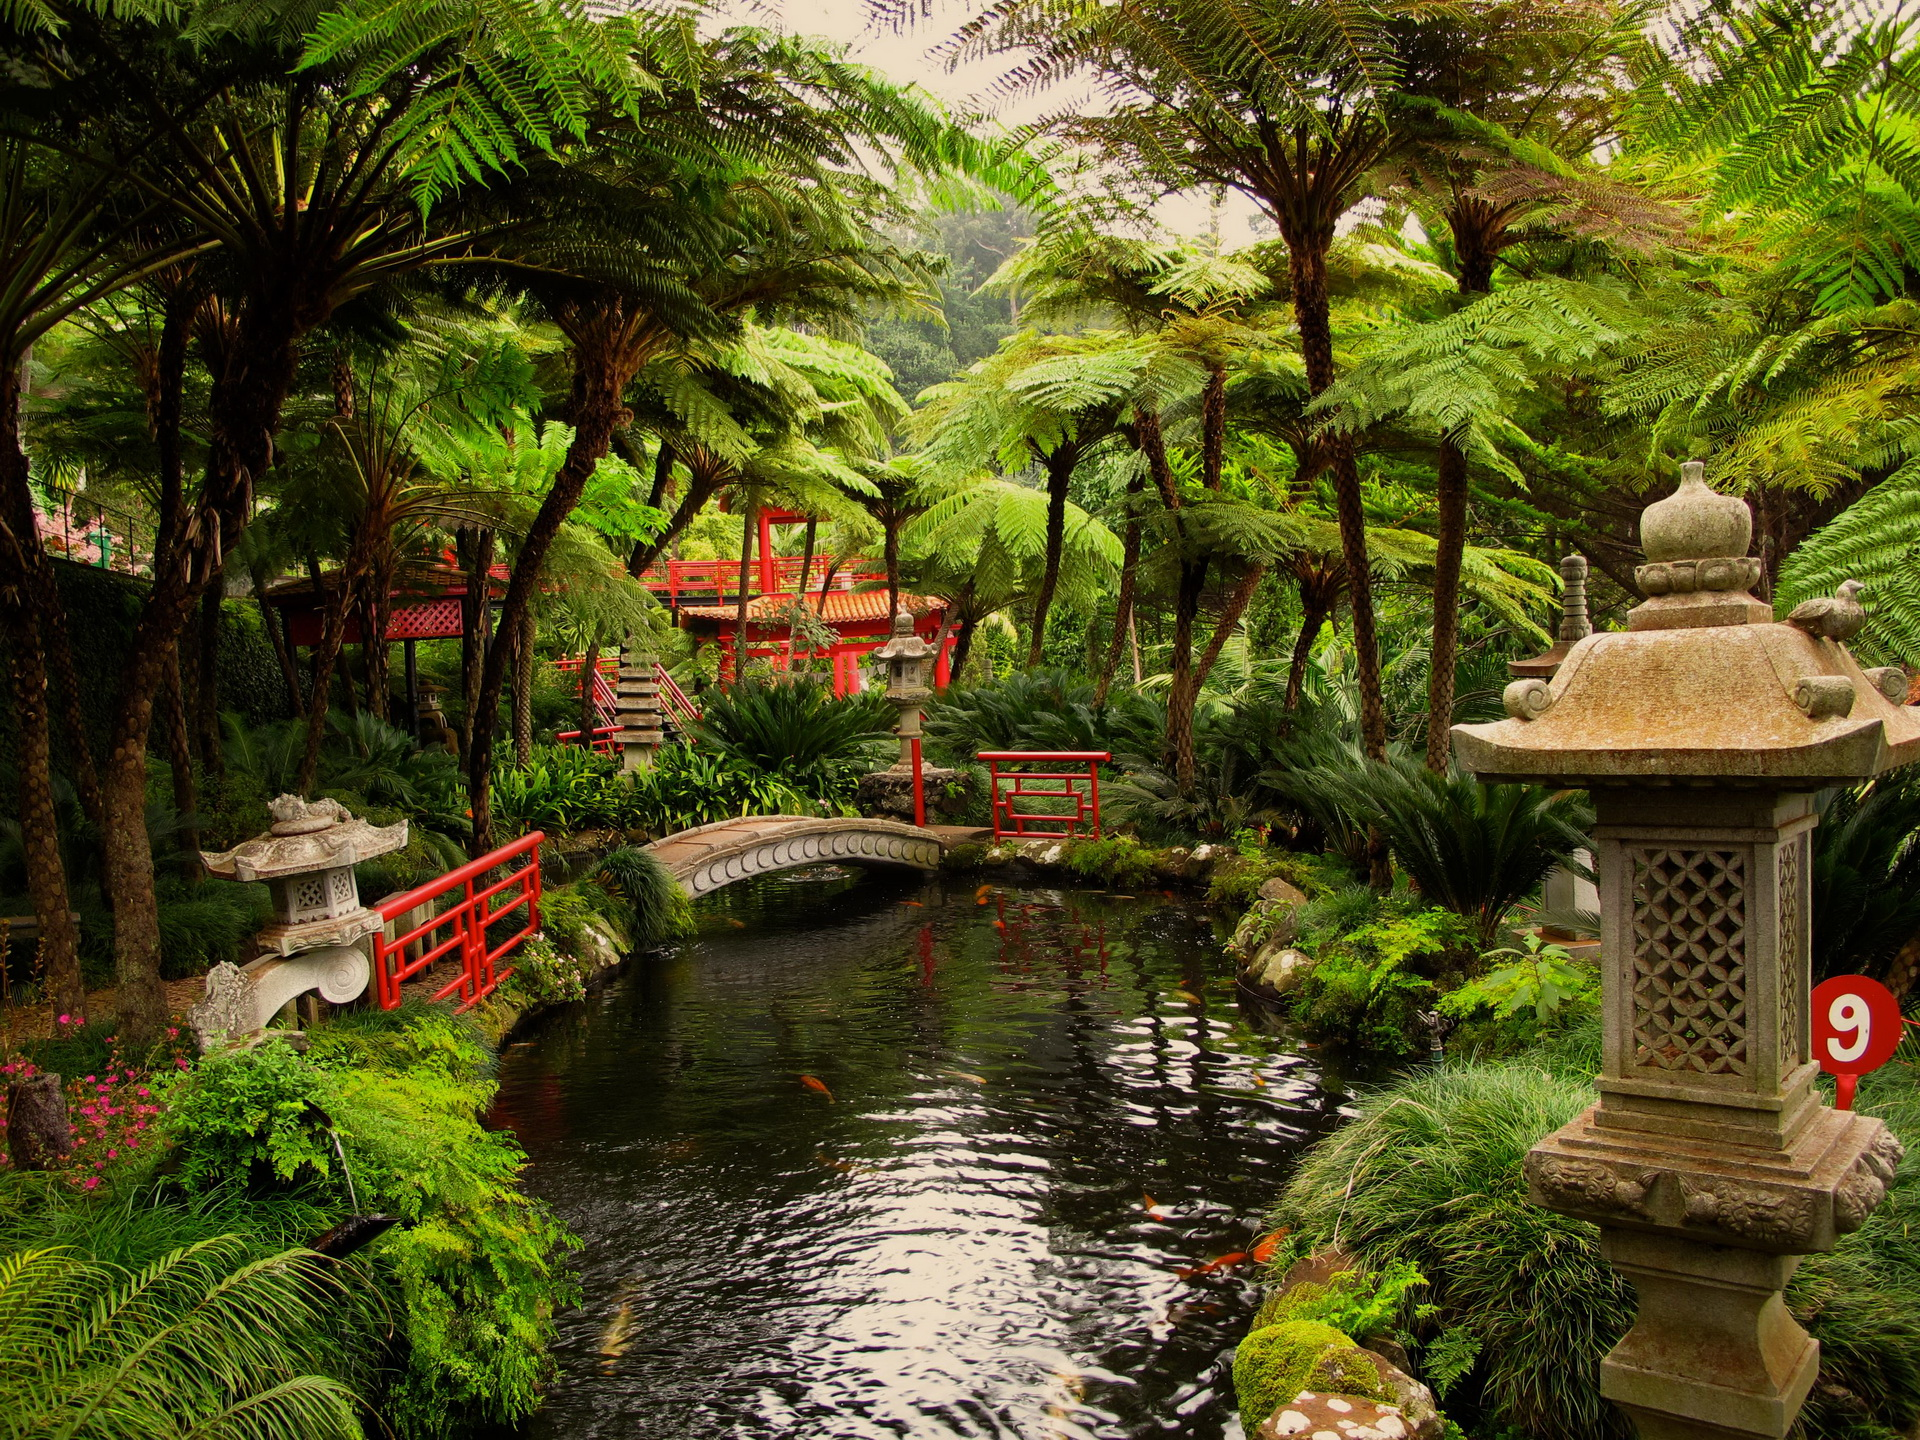 Jardin Japonais Wallpaper Oriental Full Hd Wallpaper And Background Image